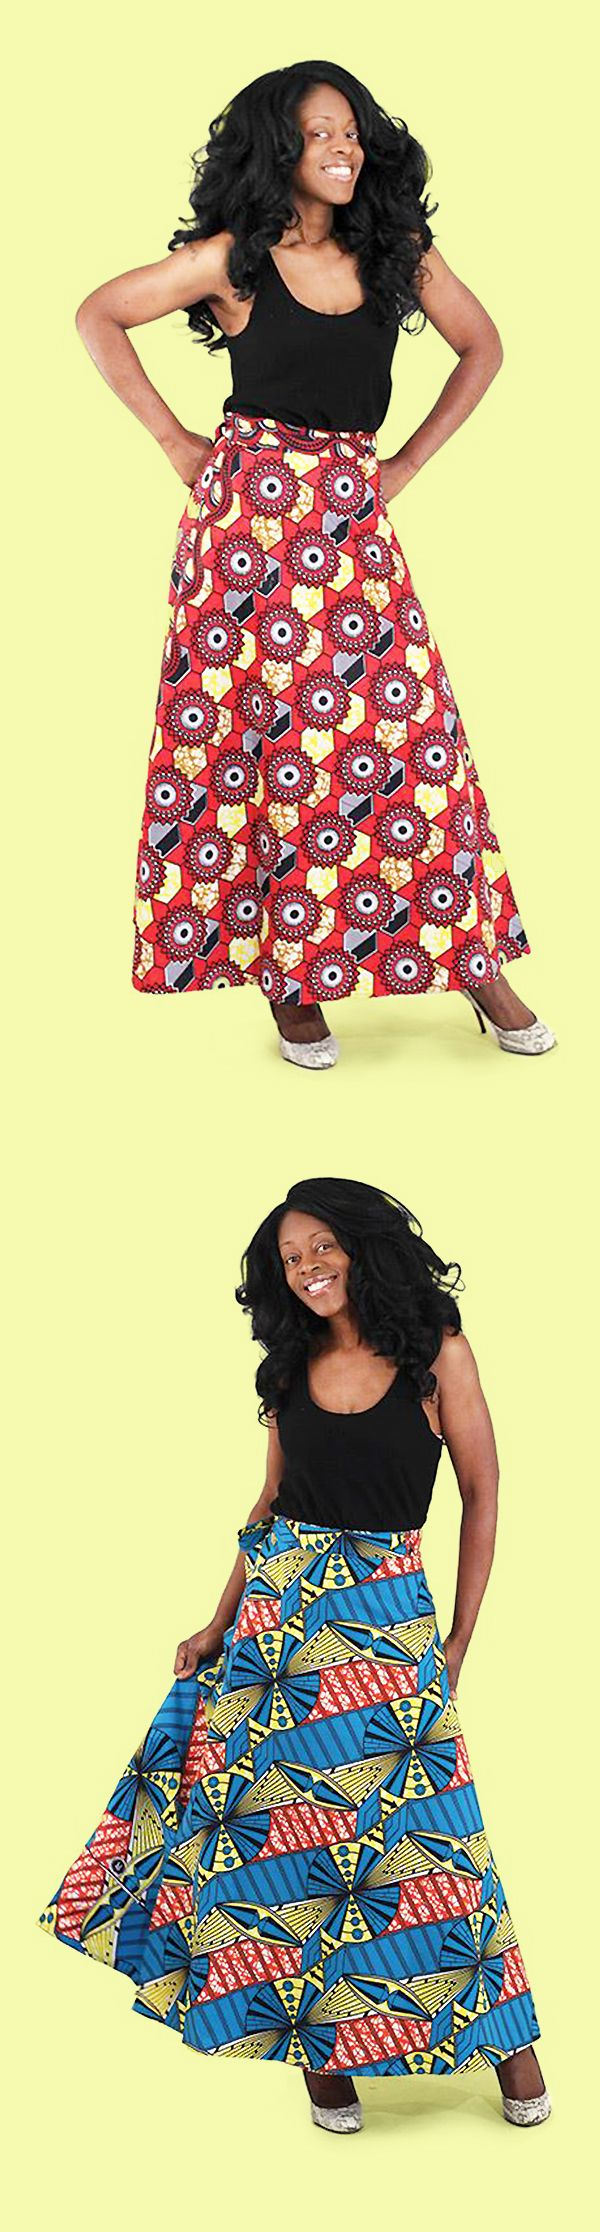 African Wrap Skirt with traditional African prints - This comfortable yet dressy wrap skirt is perfect for wearing to work or to an event.  Each skirt is printed with traditional African pattern and colors.  Skirts come in red, yellow, blue, and many more colors!  #skirt #dressy #dressup #color #pattern #africanpattern #africa #african #dressycasual #womensfashion #fashion